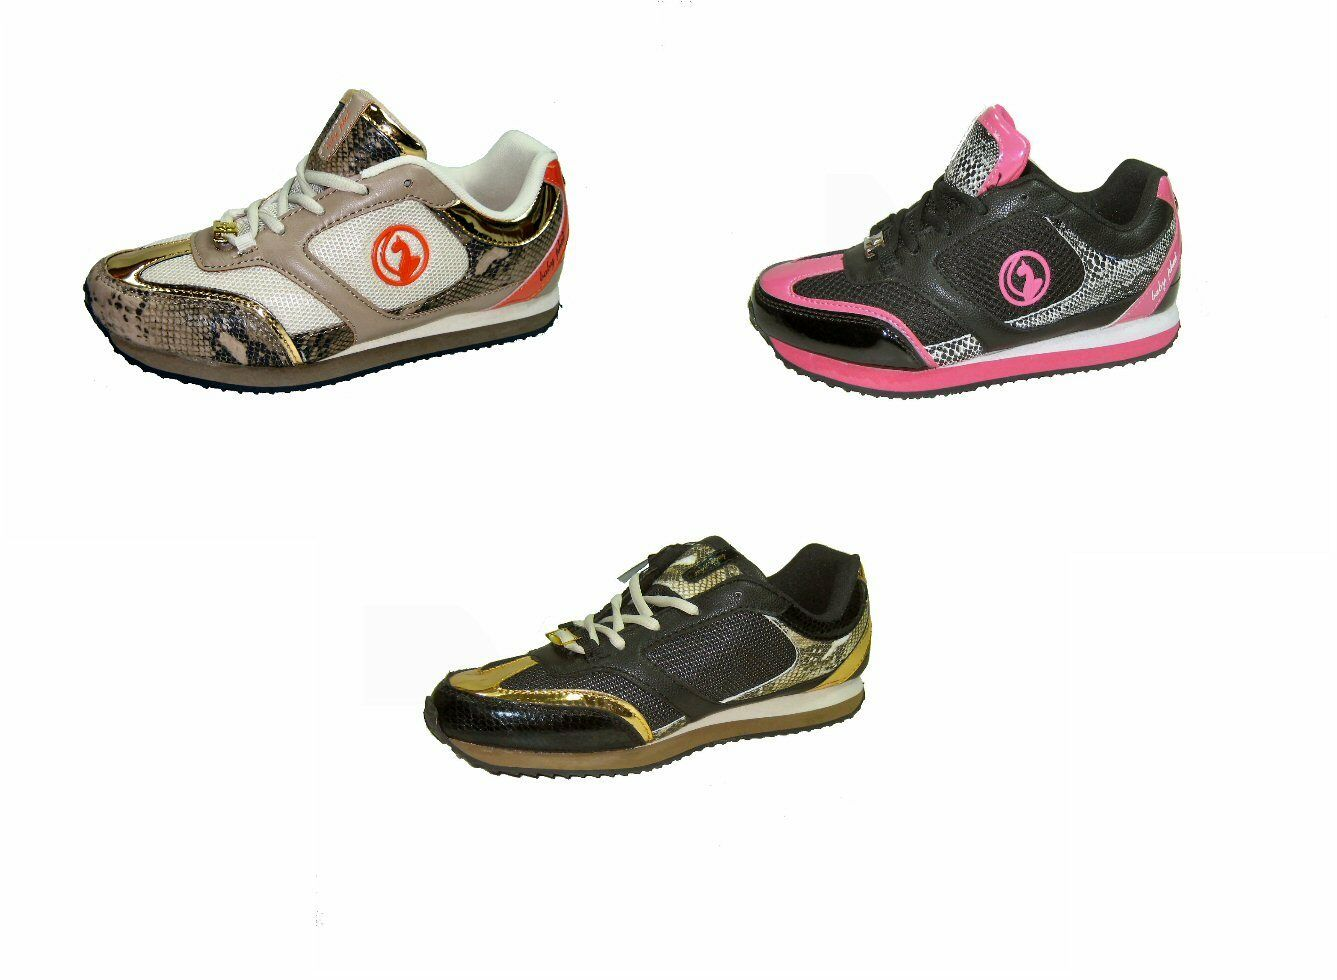 Baby Phat Fallon women's athletic comfort flats lace up low top sneakers shoes